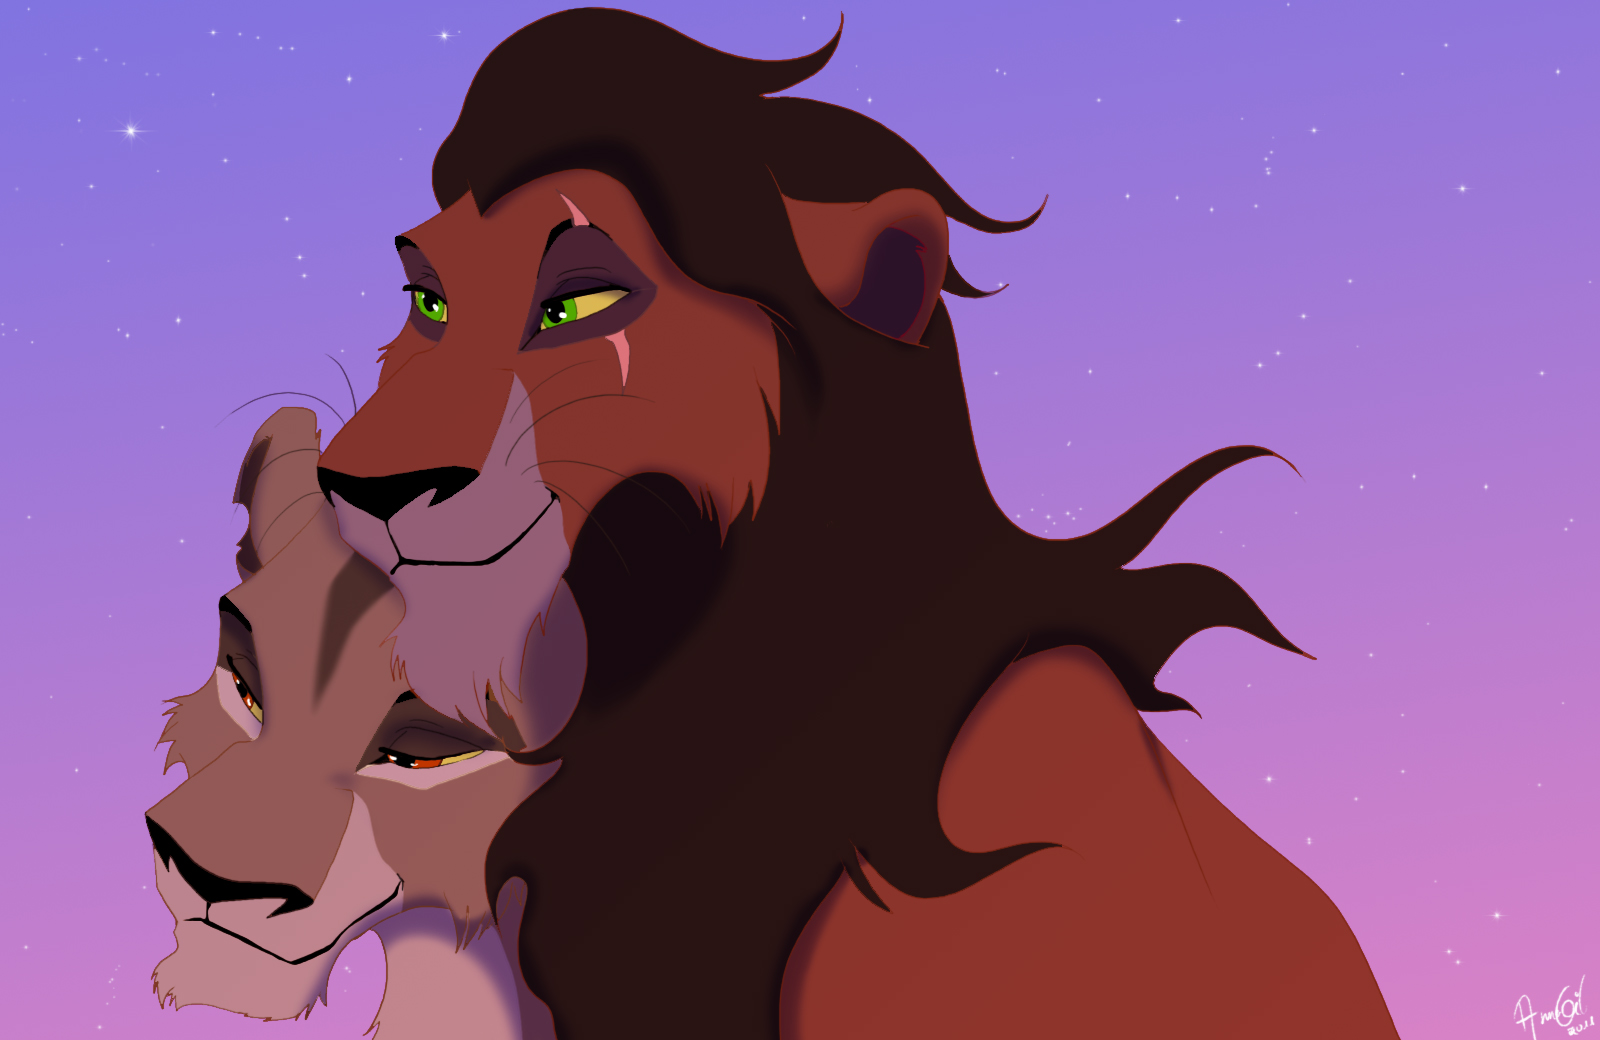 scar and zira - Lion King Couples Foto (31064827) - Fanpop